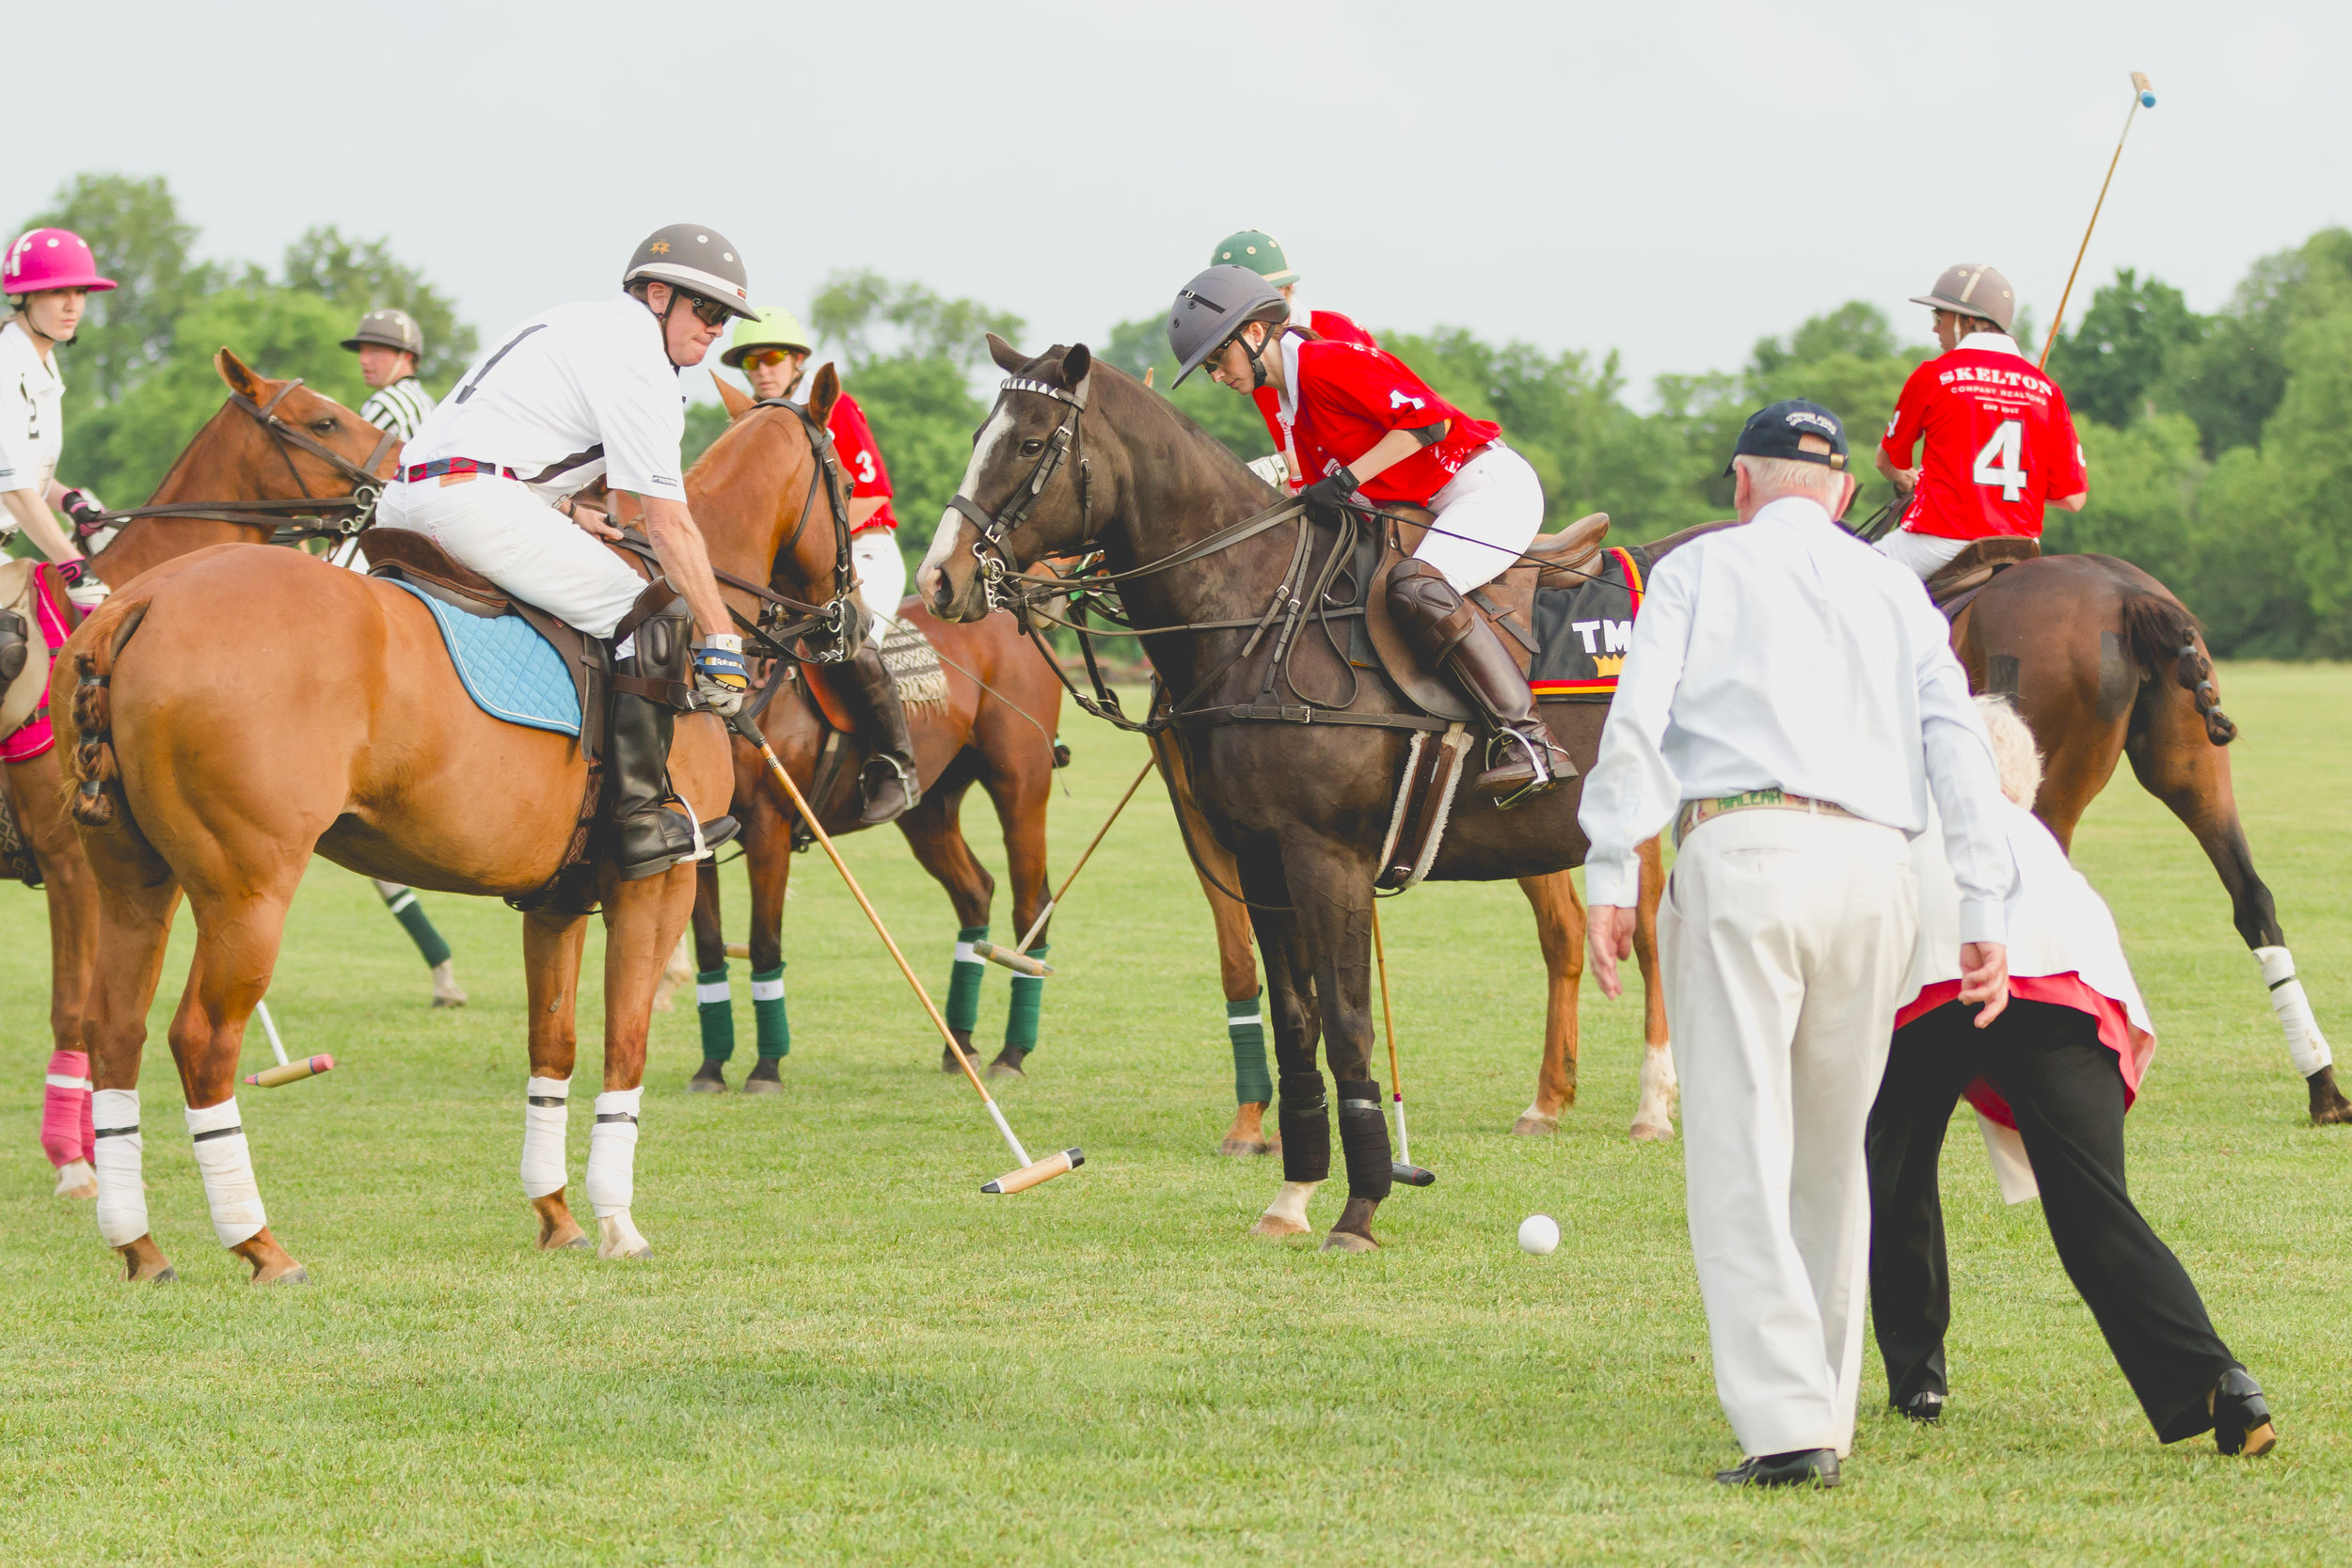 BBP-TWILIGHT POLO-9.jpg